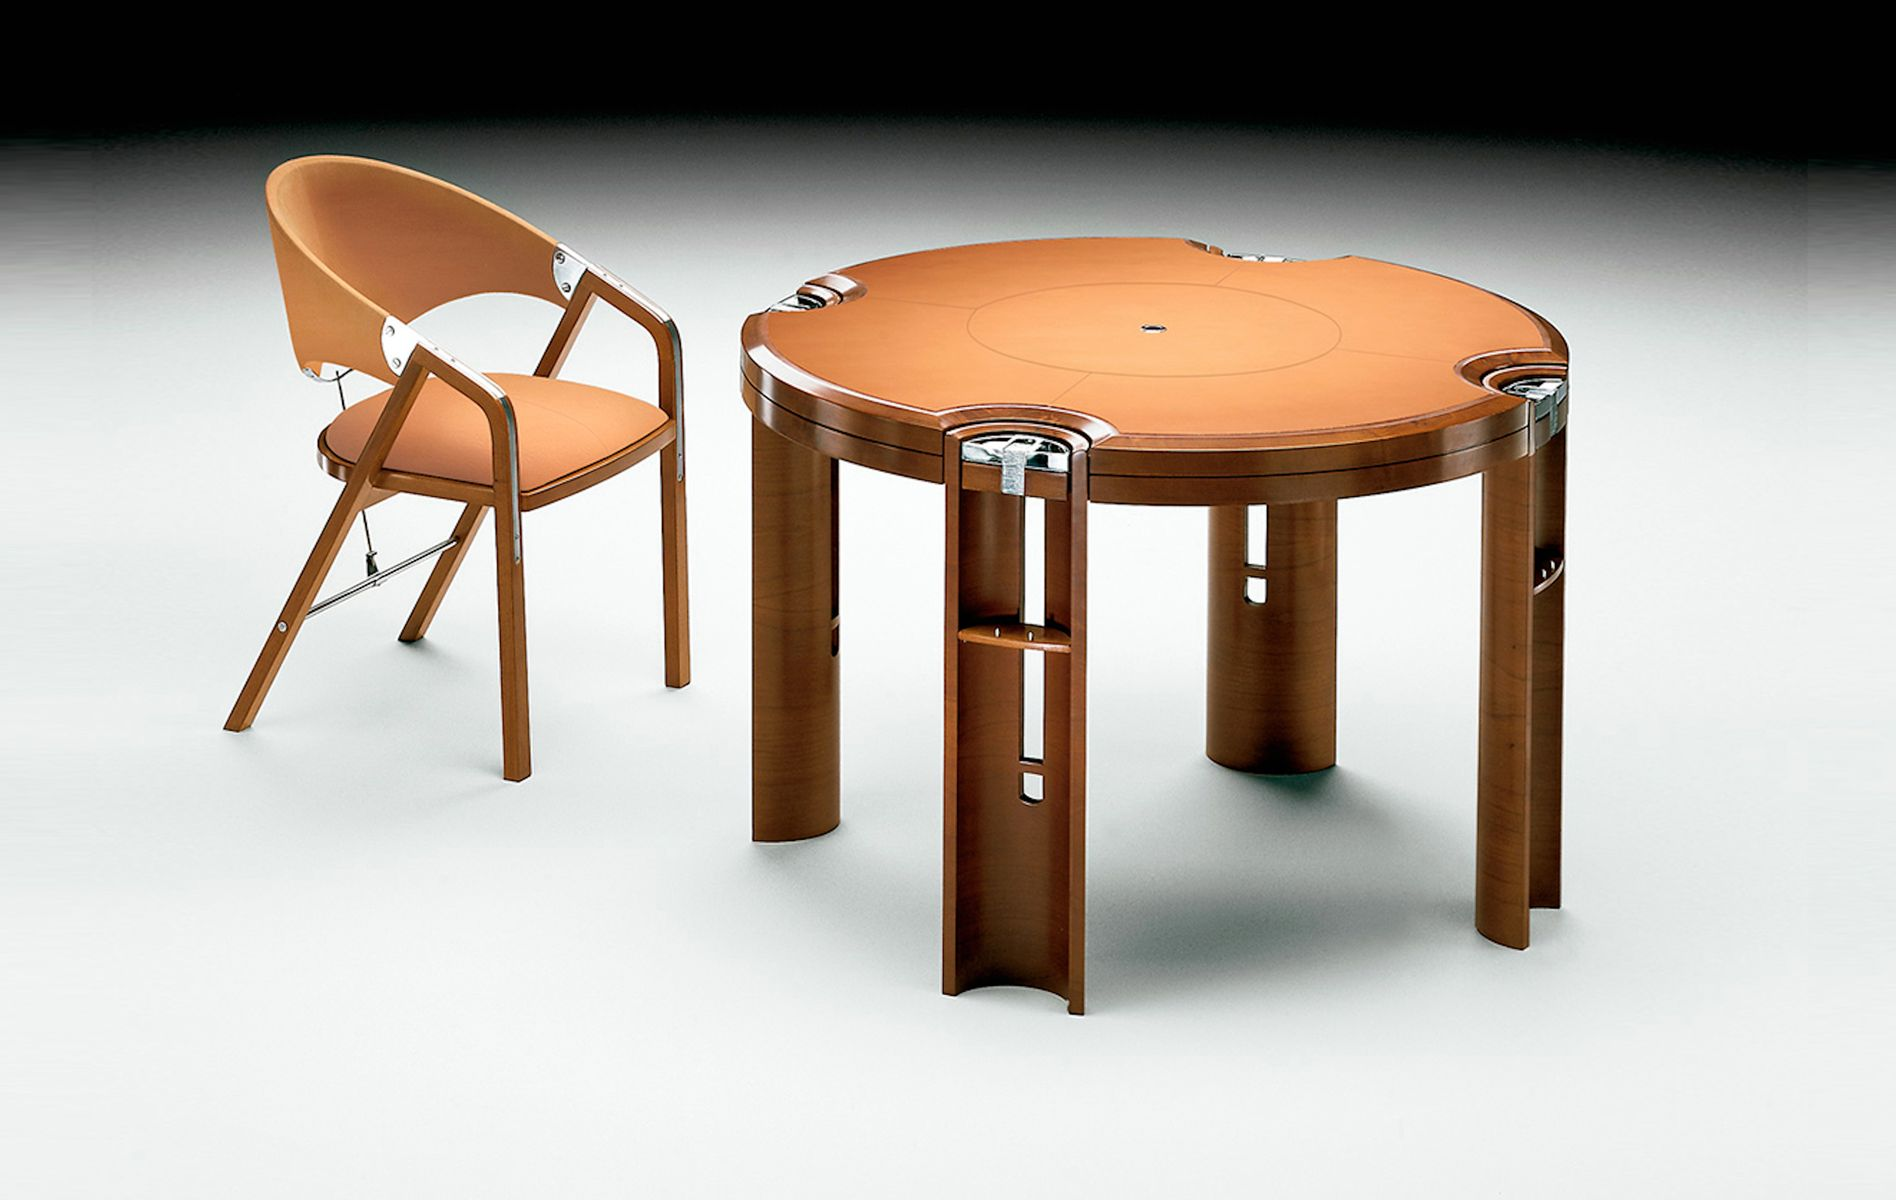 table de jeux en noyer clair par j tresserra 1987 en vente sur pamono. Black Bedroom Furniture Sets. Home Design Ideas